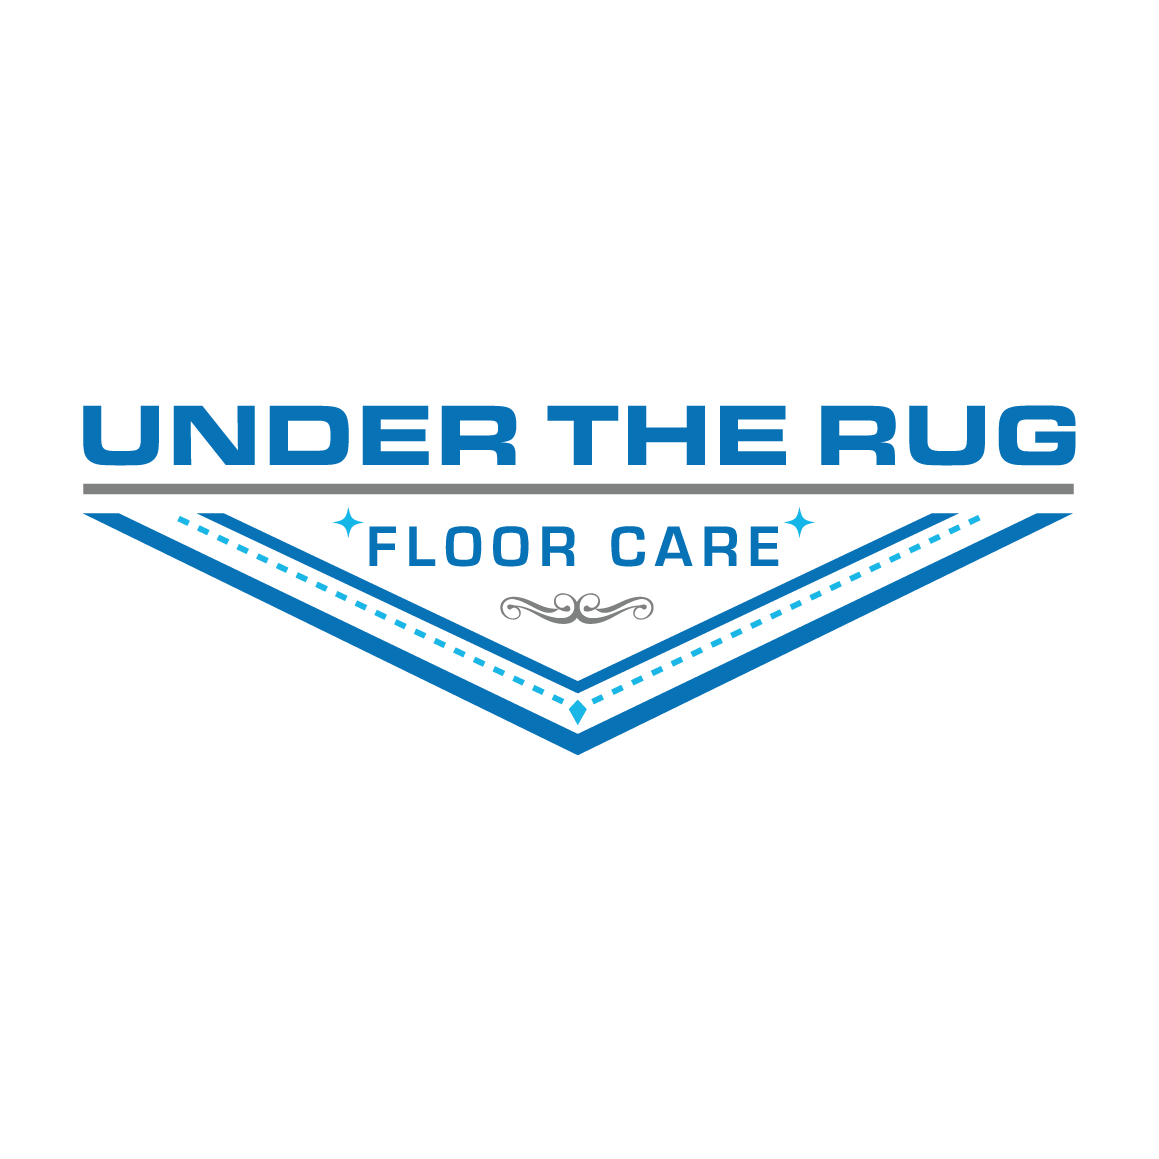 Under The Rug Floor Care